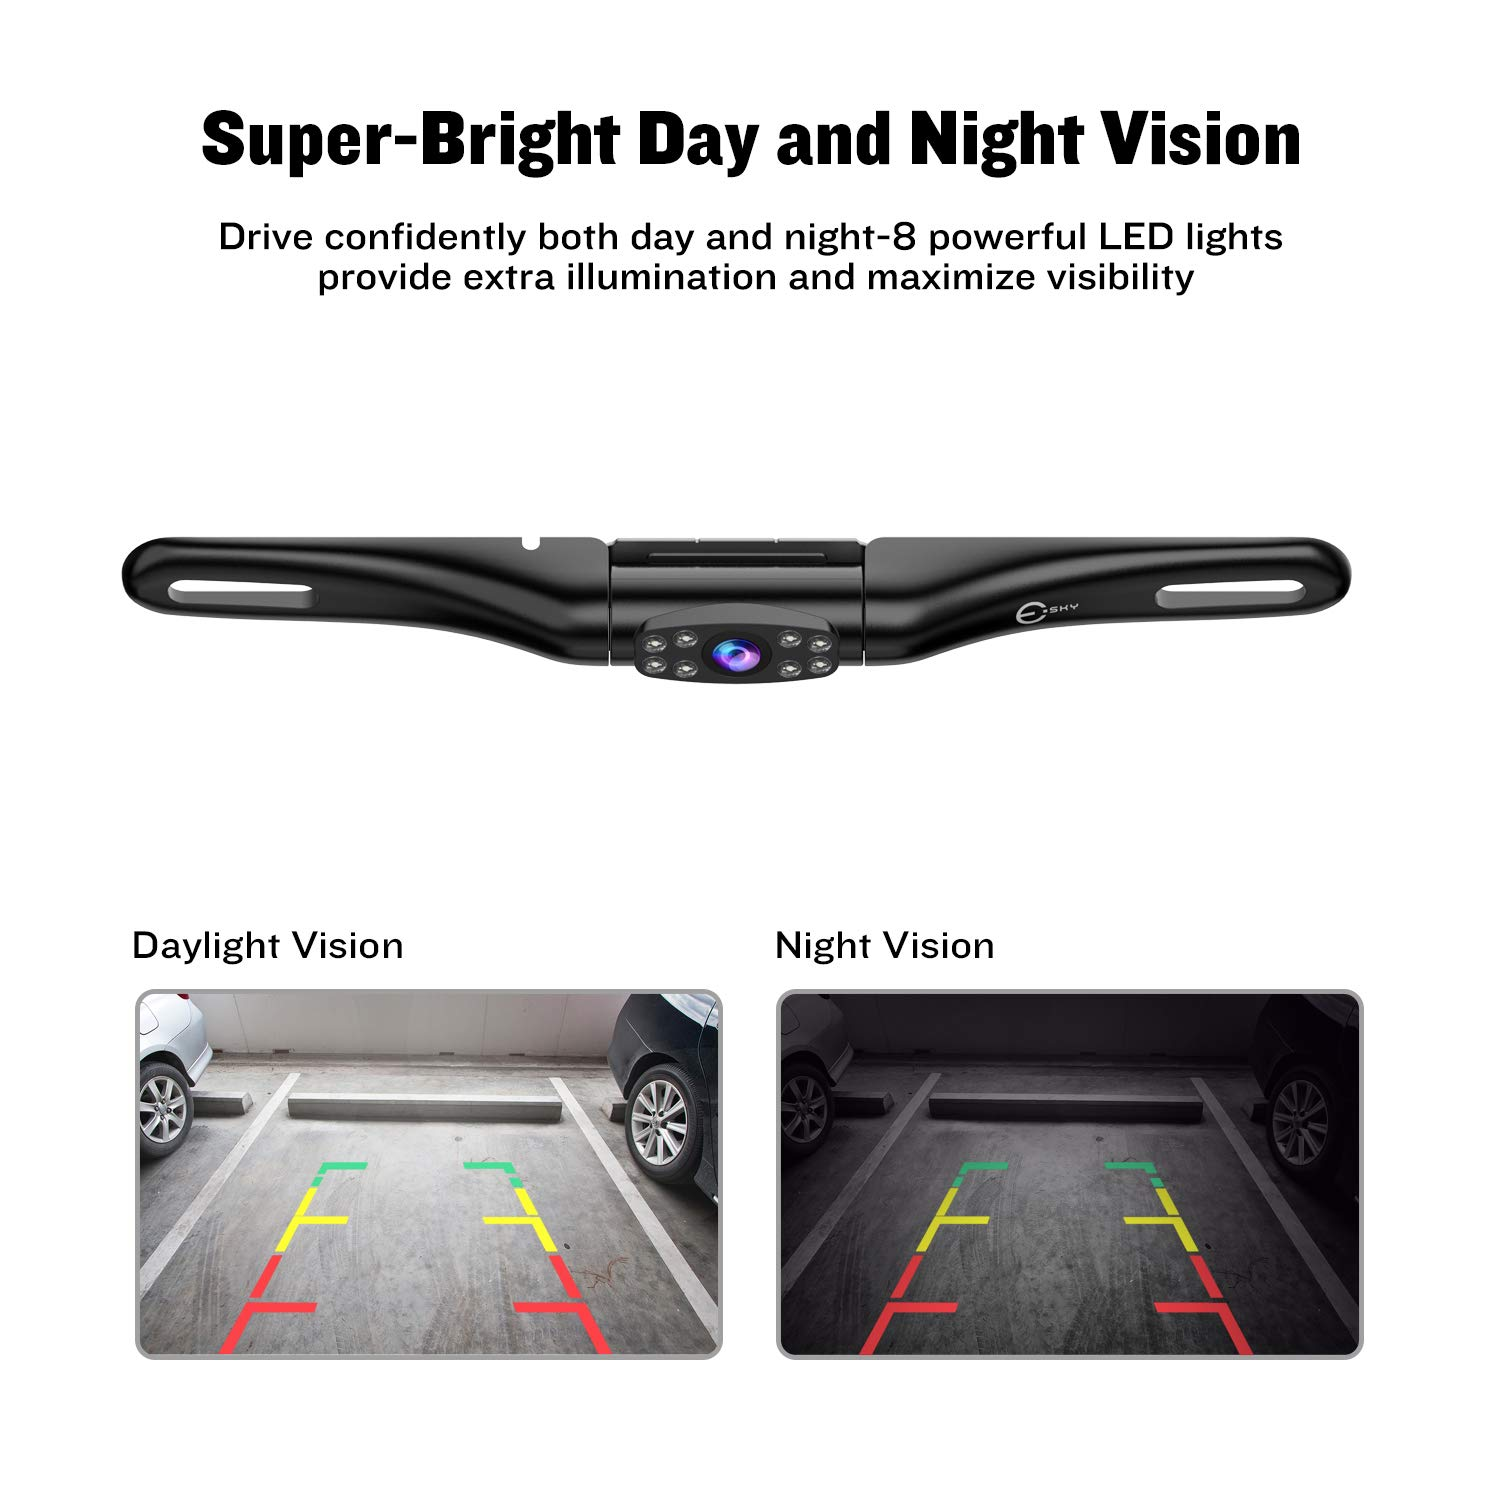 Black Esky Car Backup Camera 180 Degree Wide Angle Night Vision Waterproof HD CMOS Vehicle Car Rear View Camera EC180-35 4332971842 Support Front View